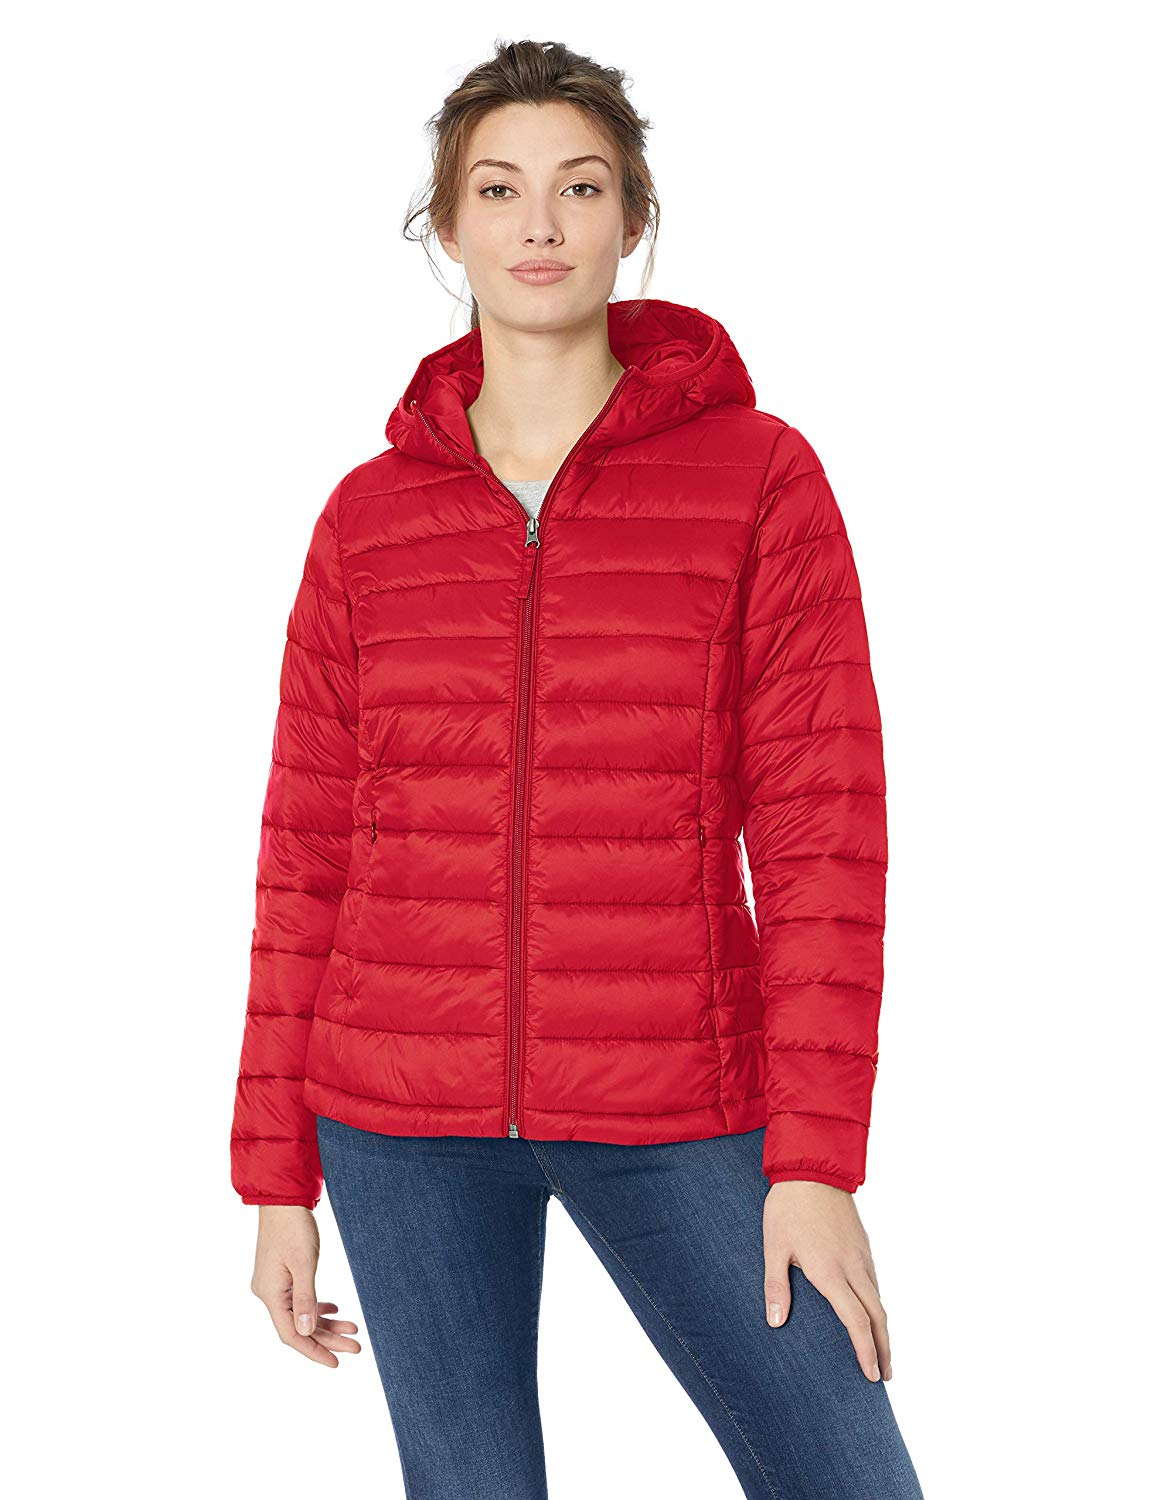 7305aaf328c Amazon Basics. Lightweight Water-resistant Packable Puffer. $44.00. BUY